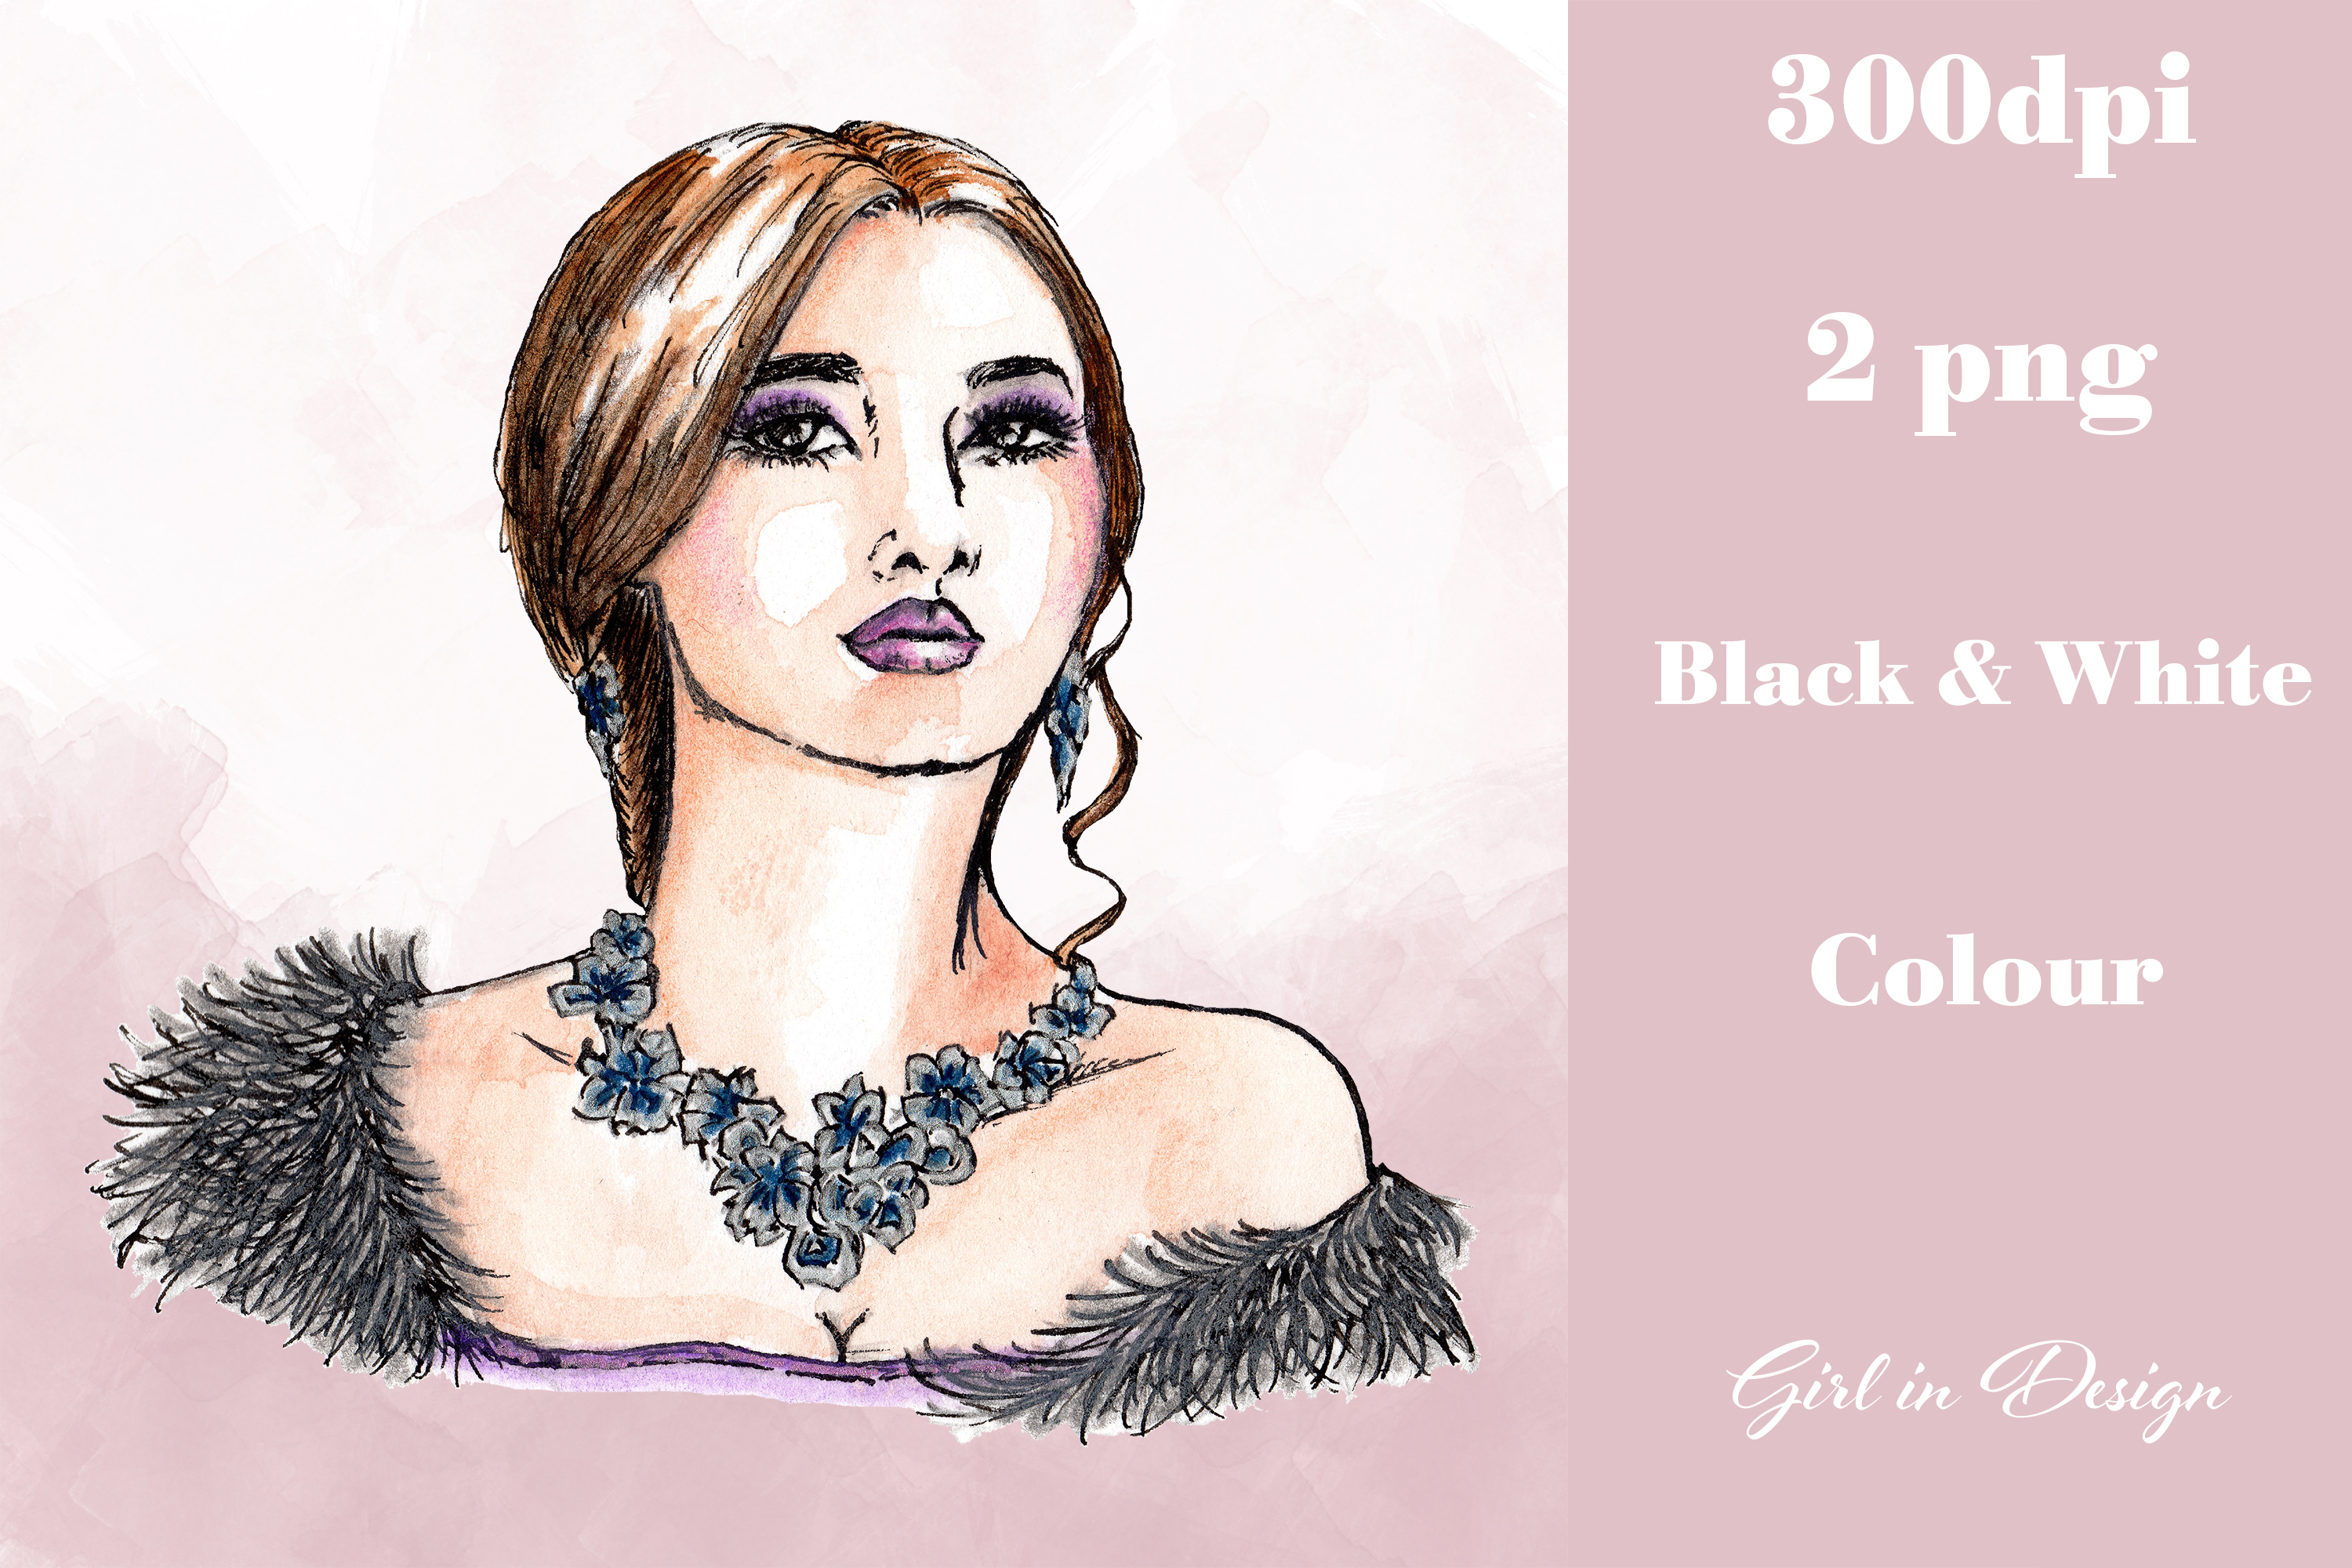 Necklace Girl Jewellery Party New Year Clipart.